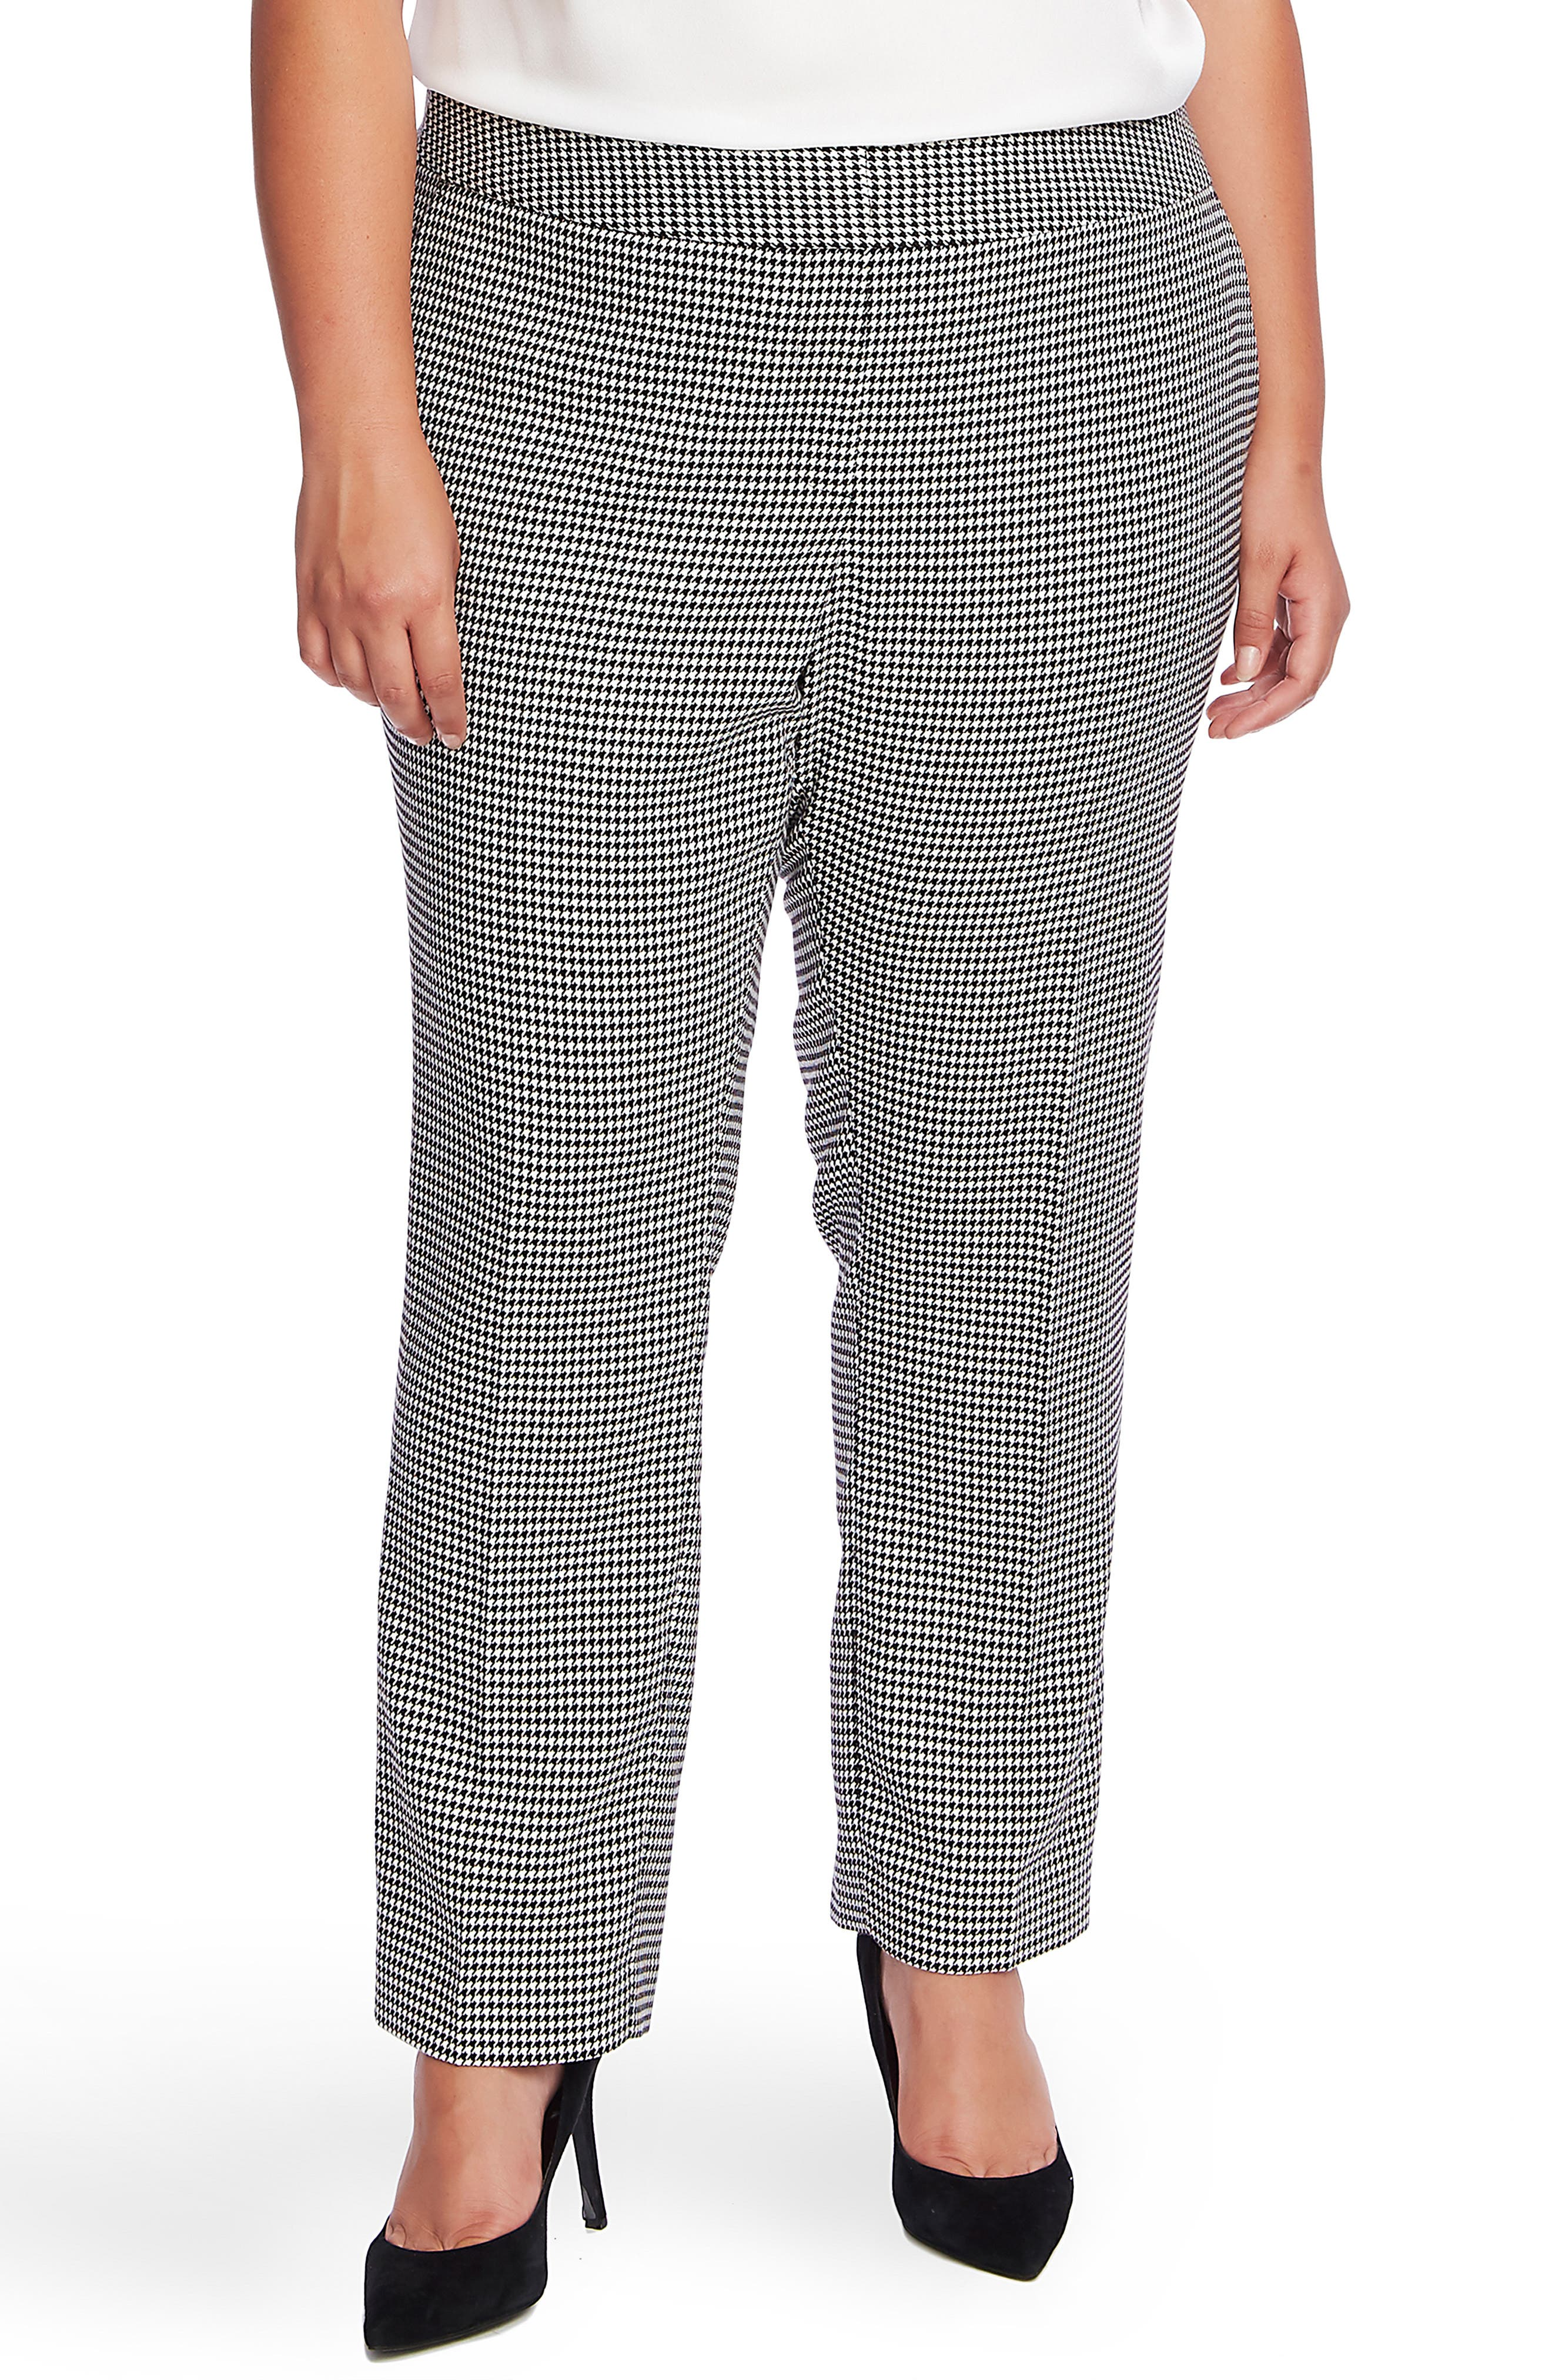 Plus Women's Vince Camuto Houndstooth Ankle Pants